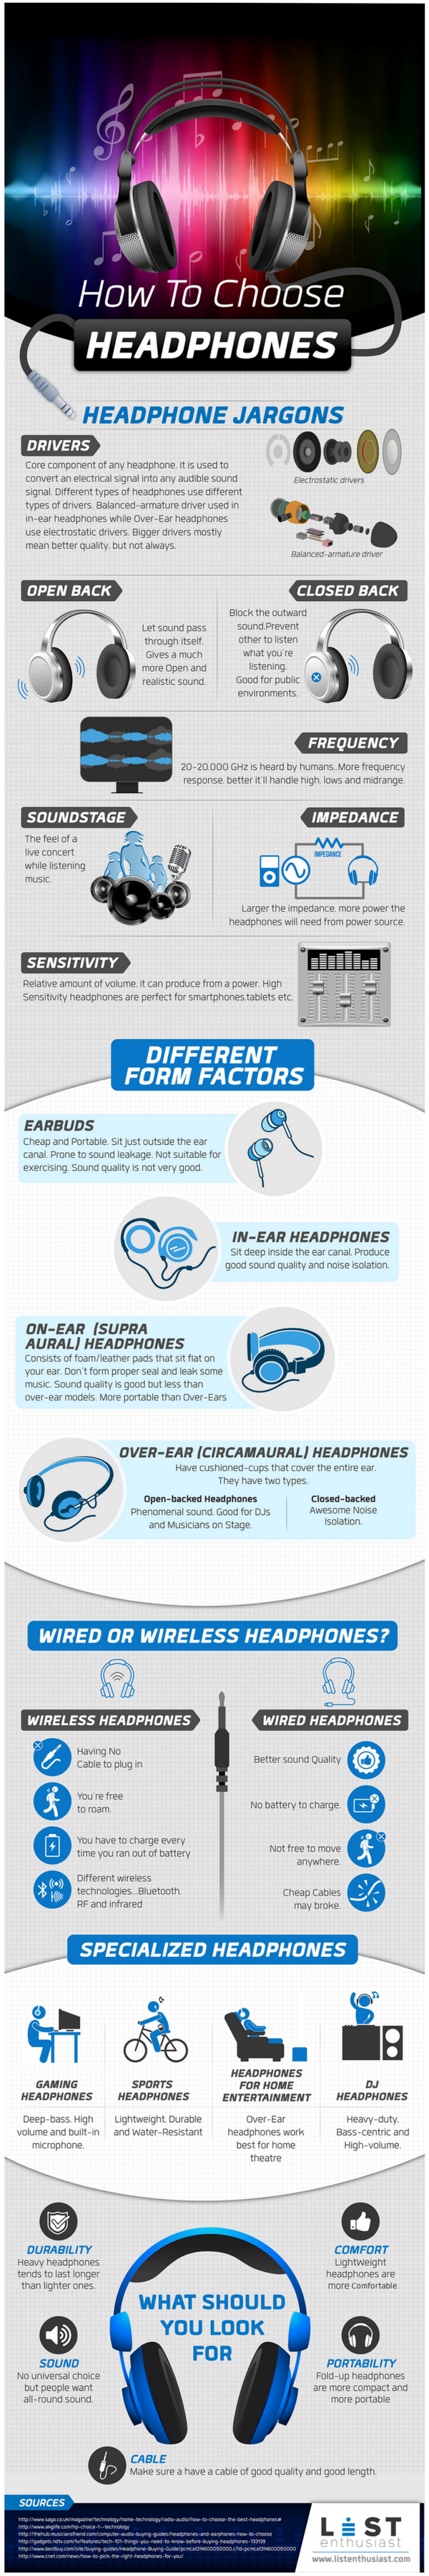 how to choose headphone